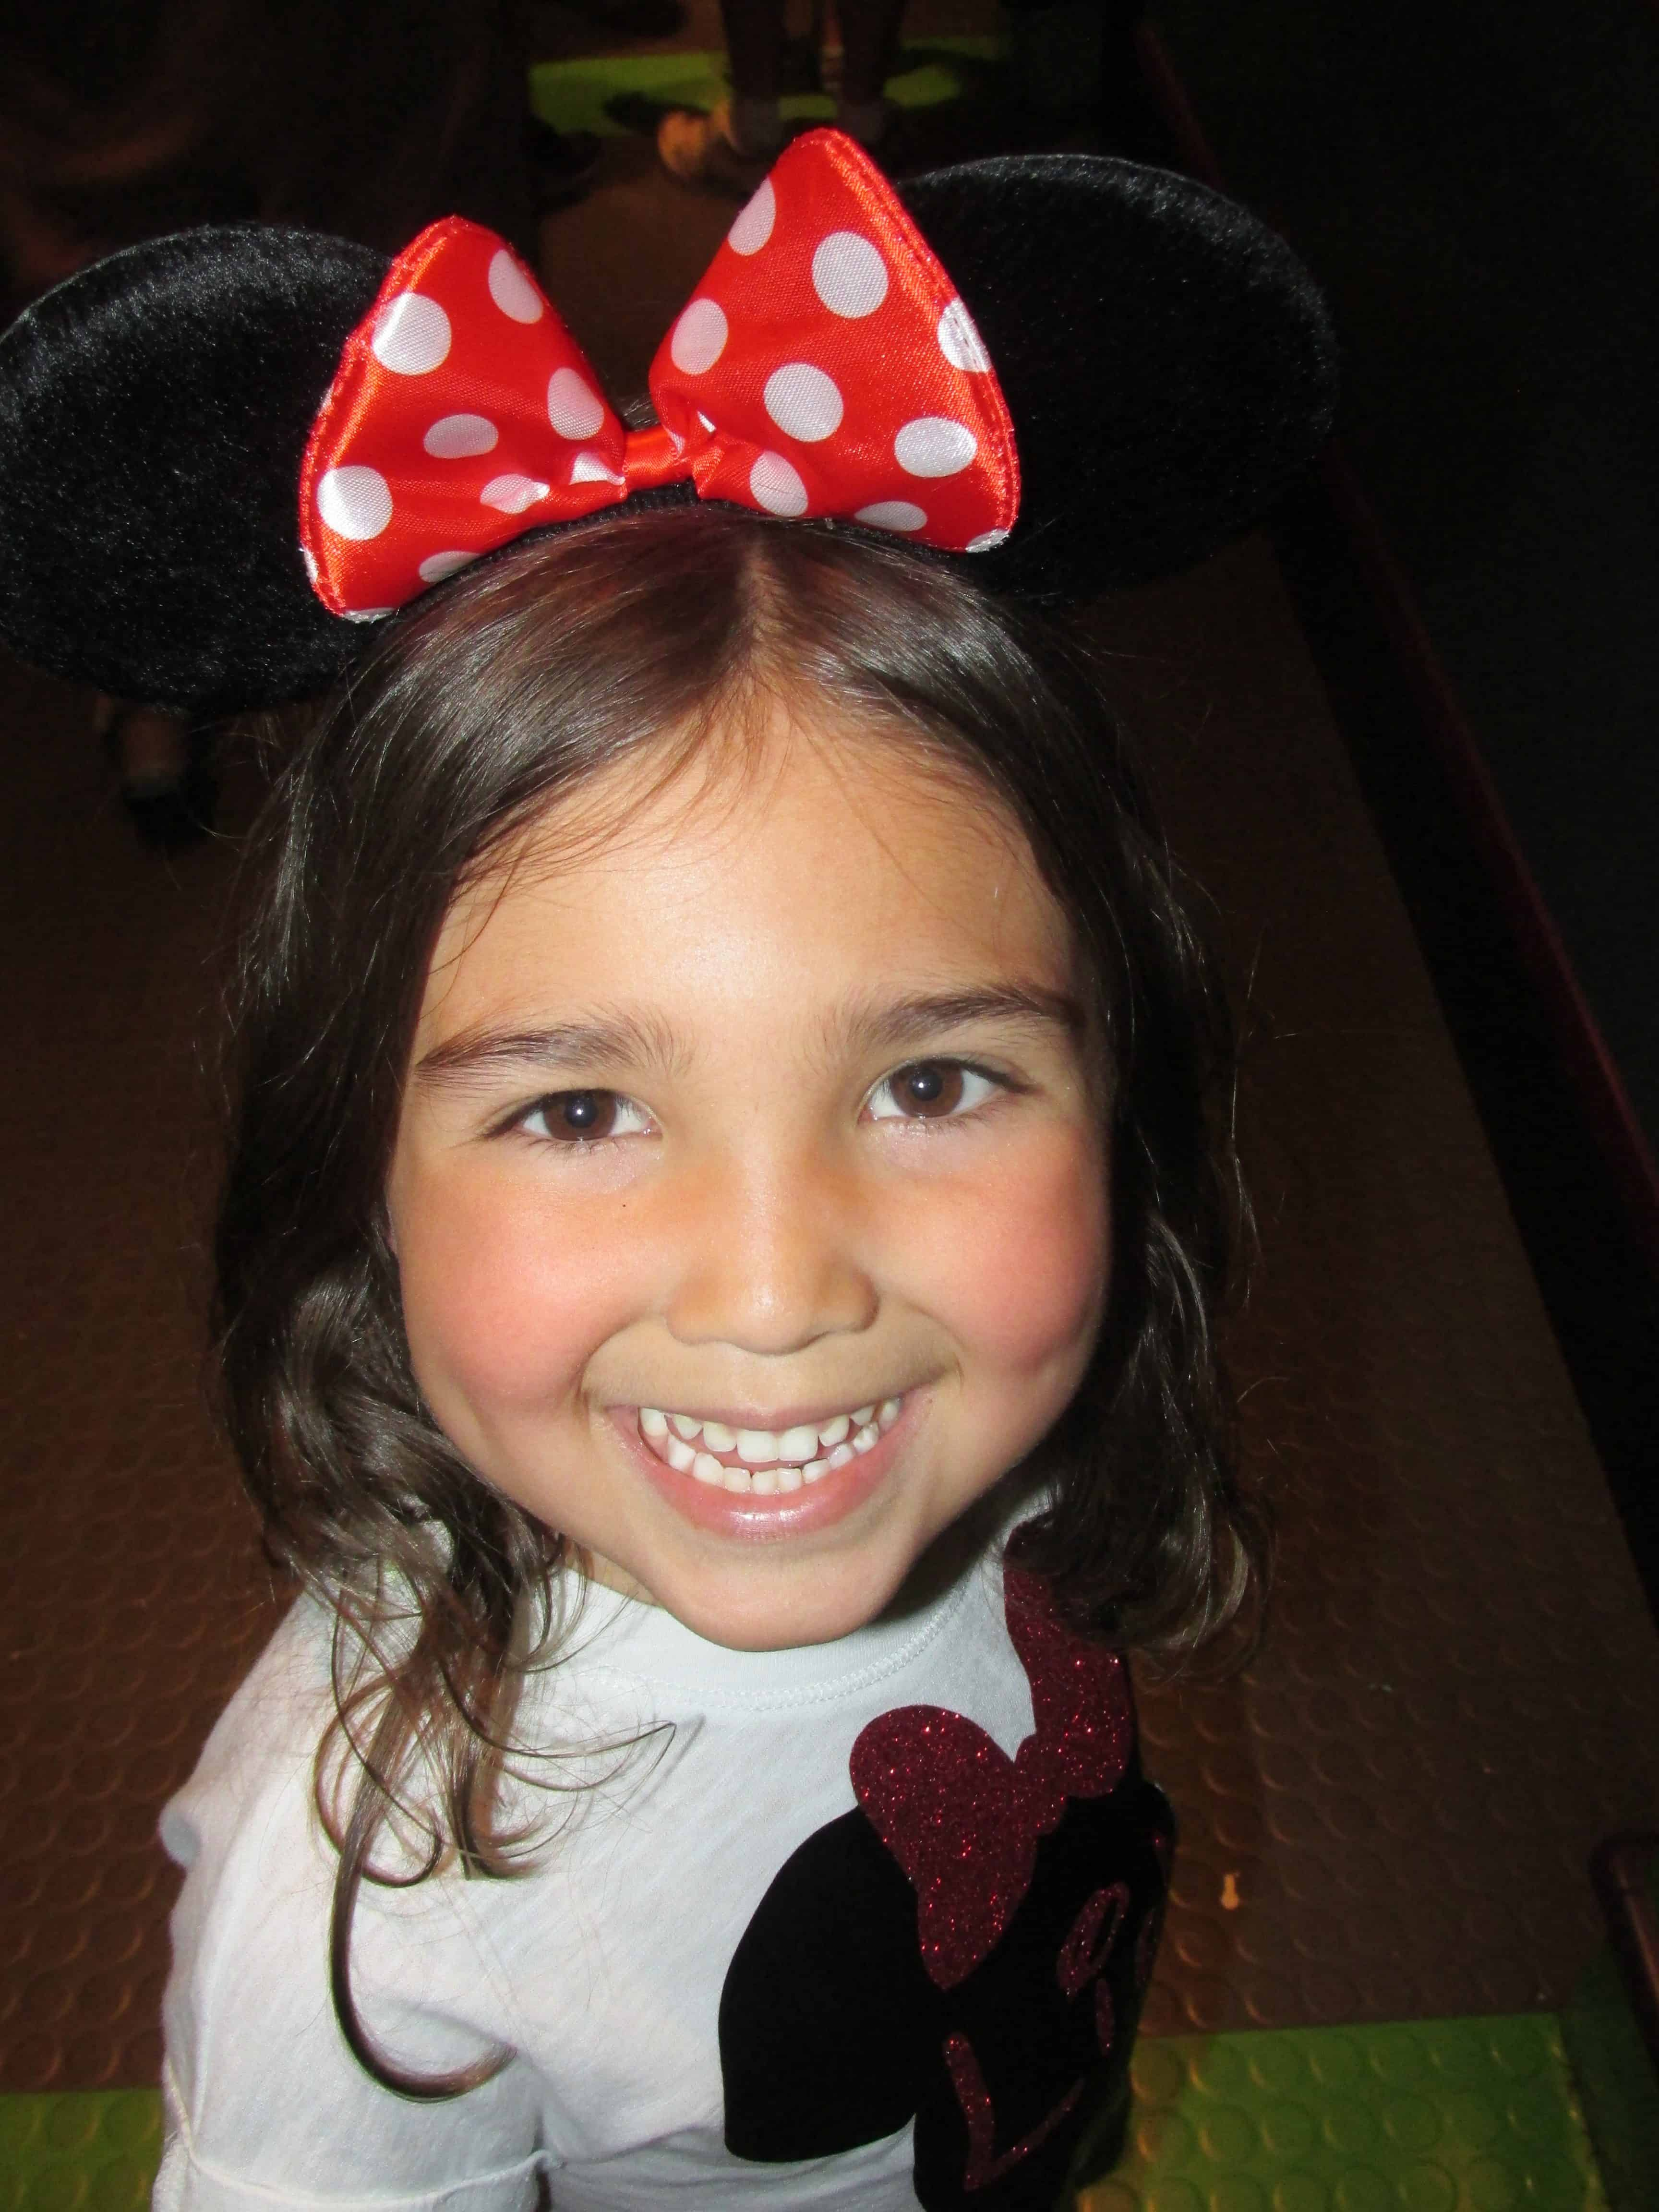 Little Lila with a red bow with white spots.